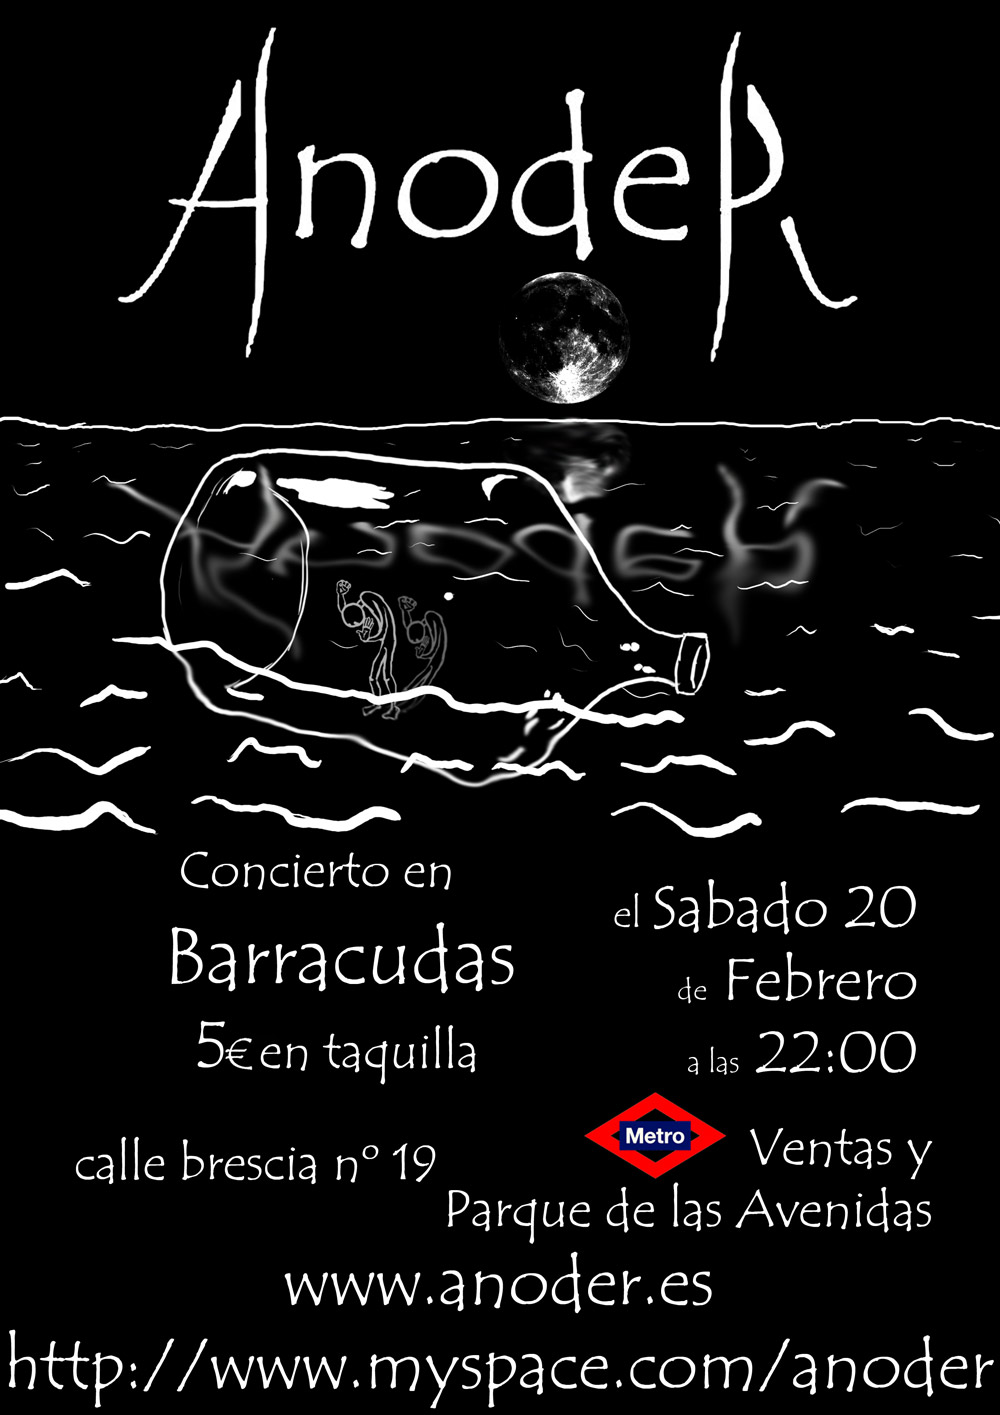 Concierto Anoder Sala Barracudas 20 Feb 2010 22 hh